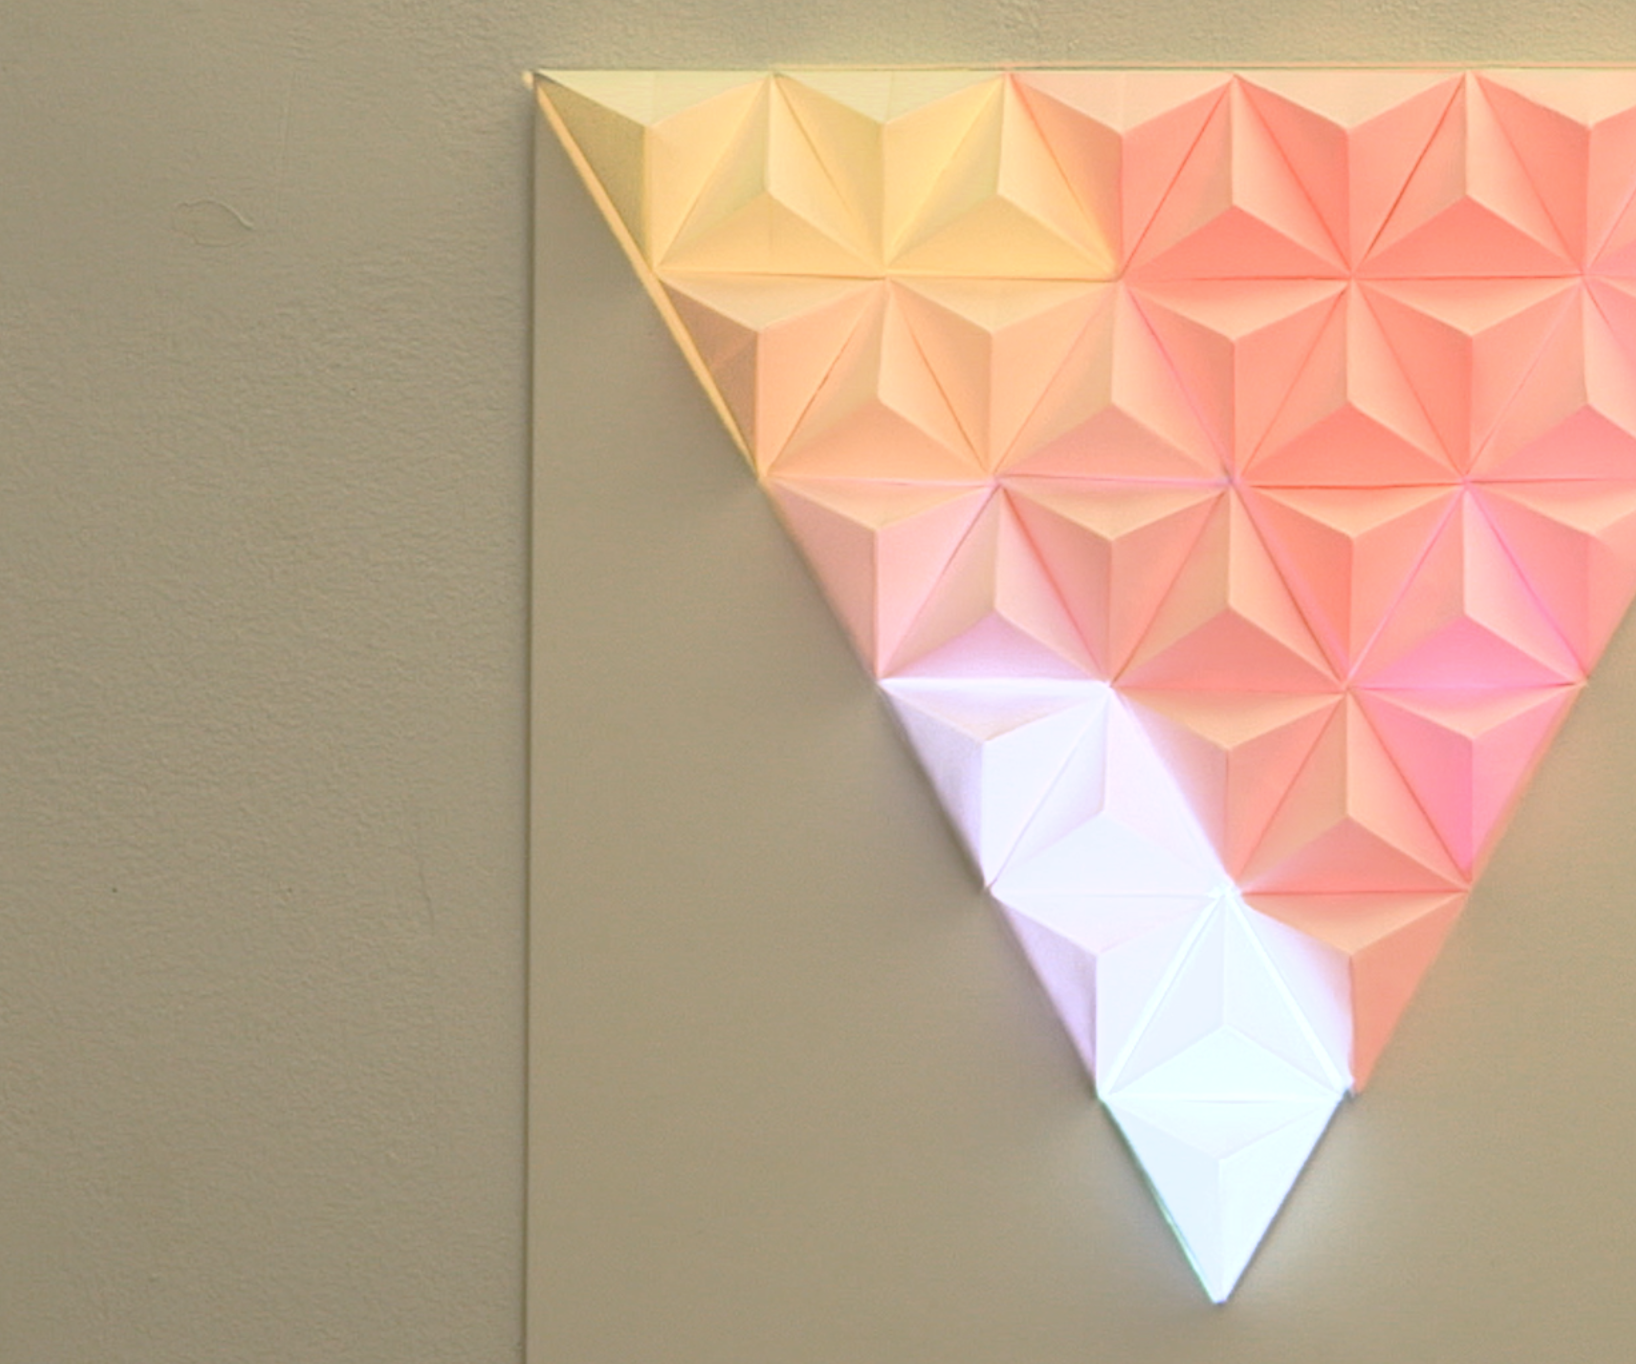 Triangle Projection